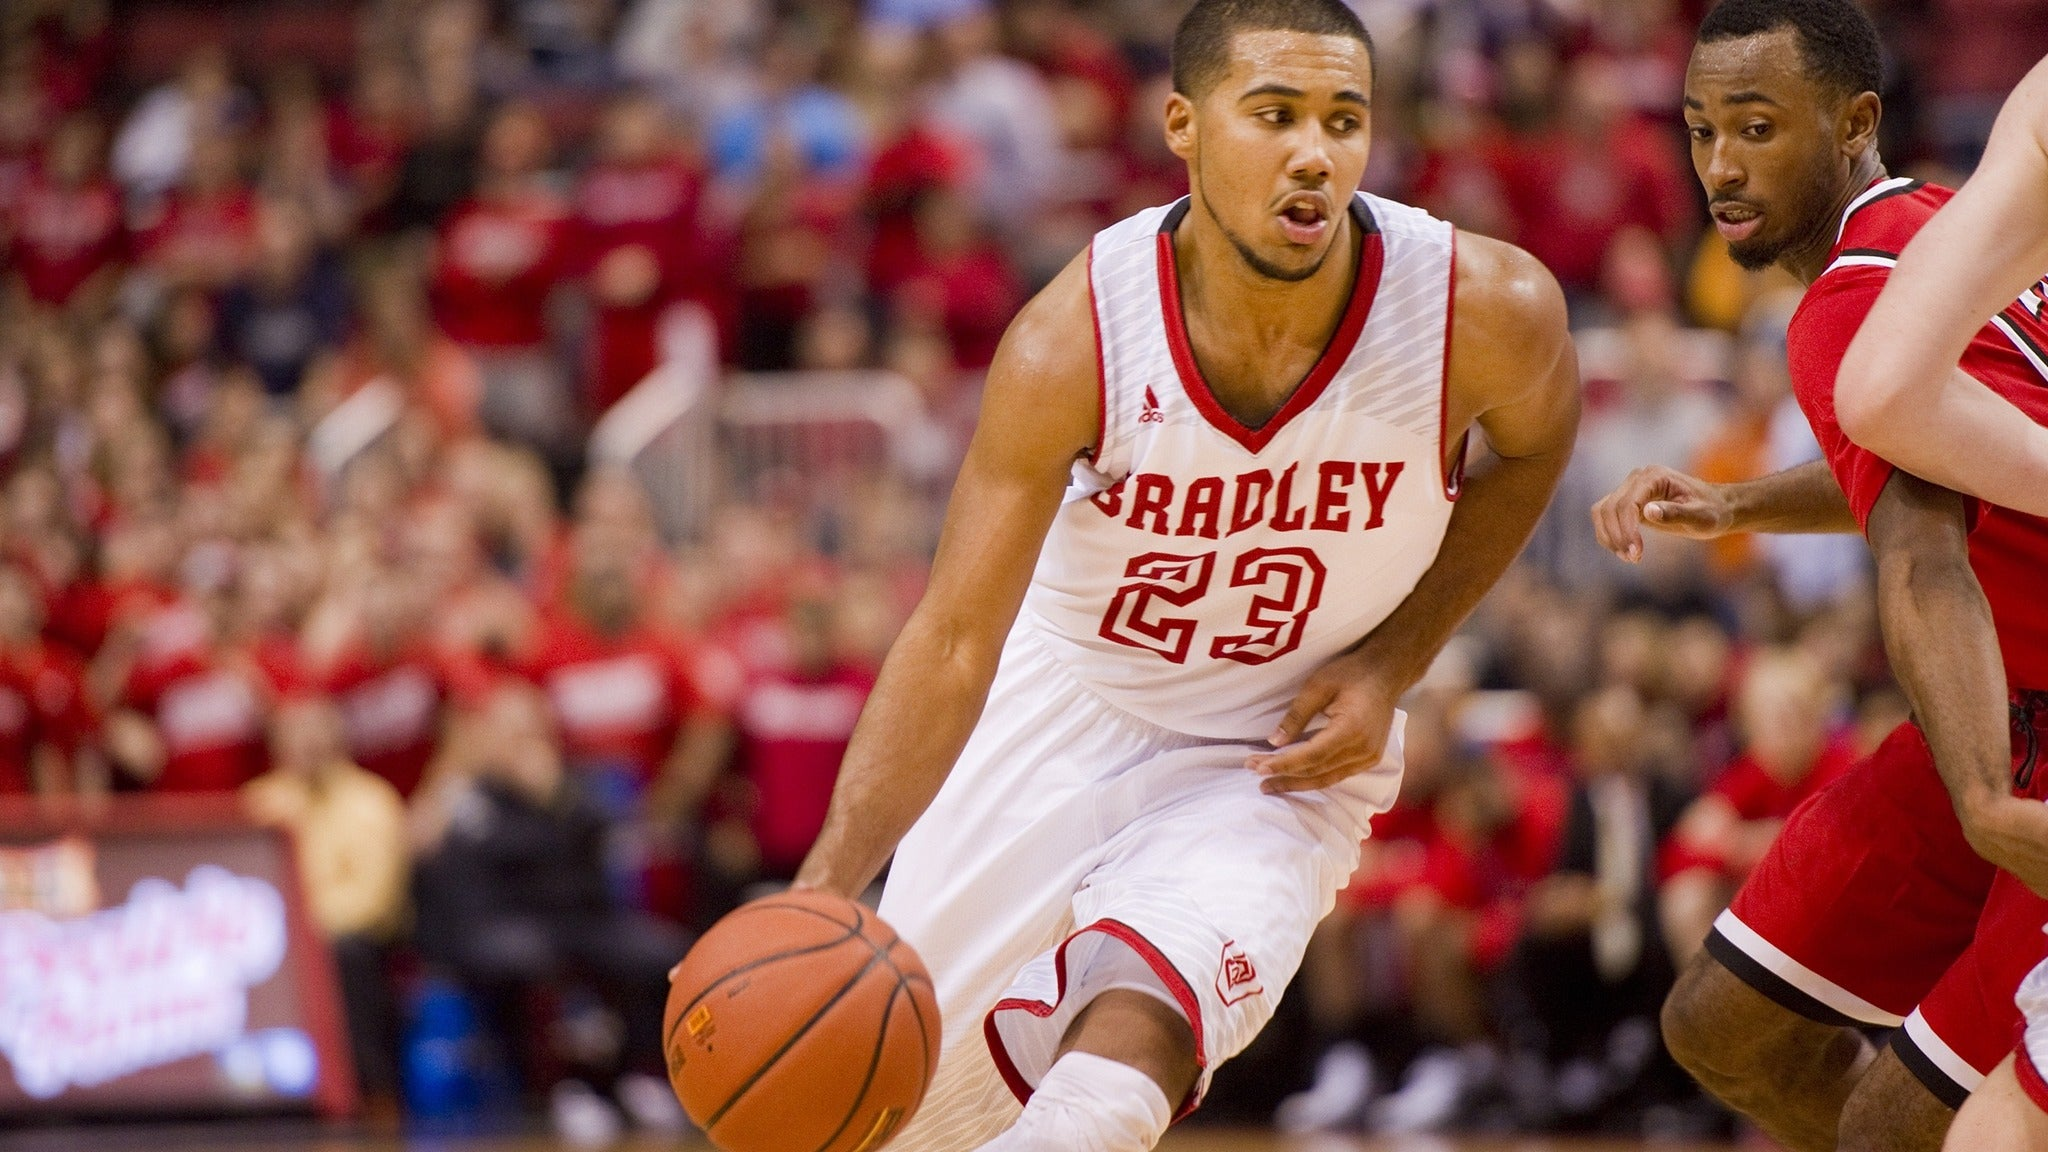 Bradley Braves vs. Drake University Mens Basketball